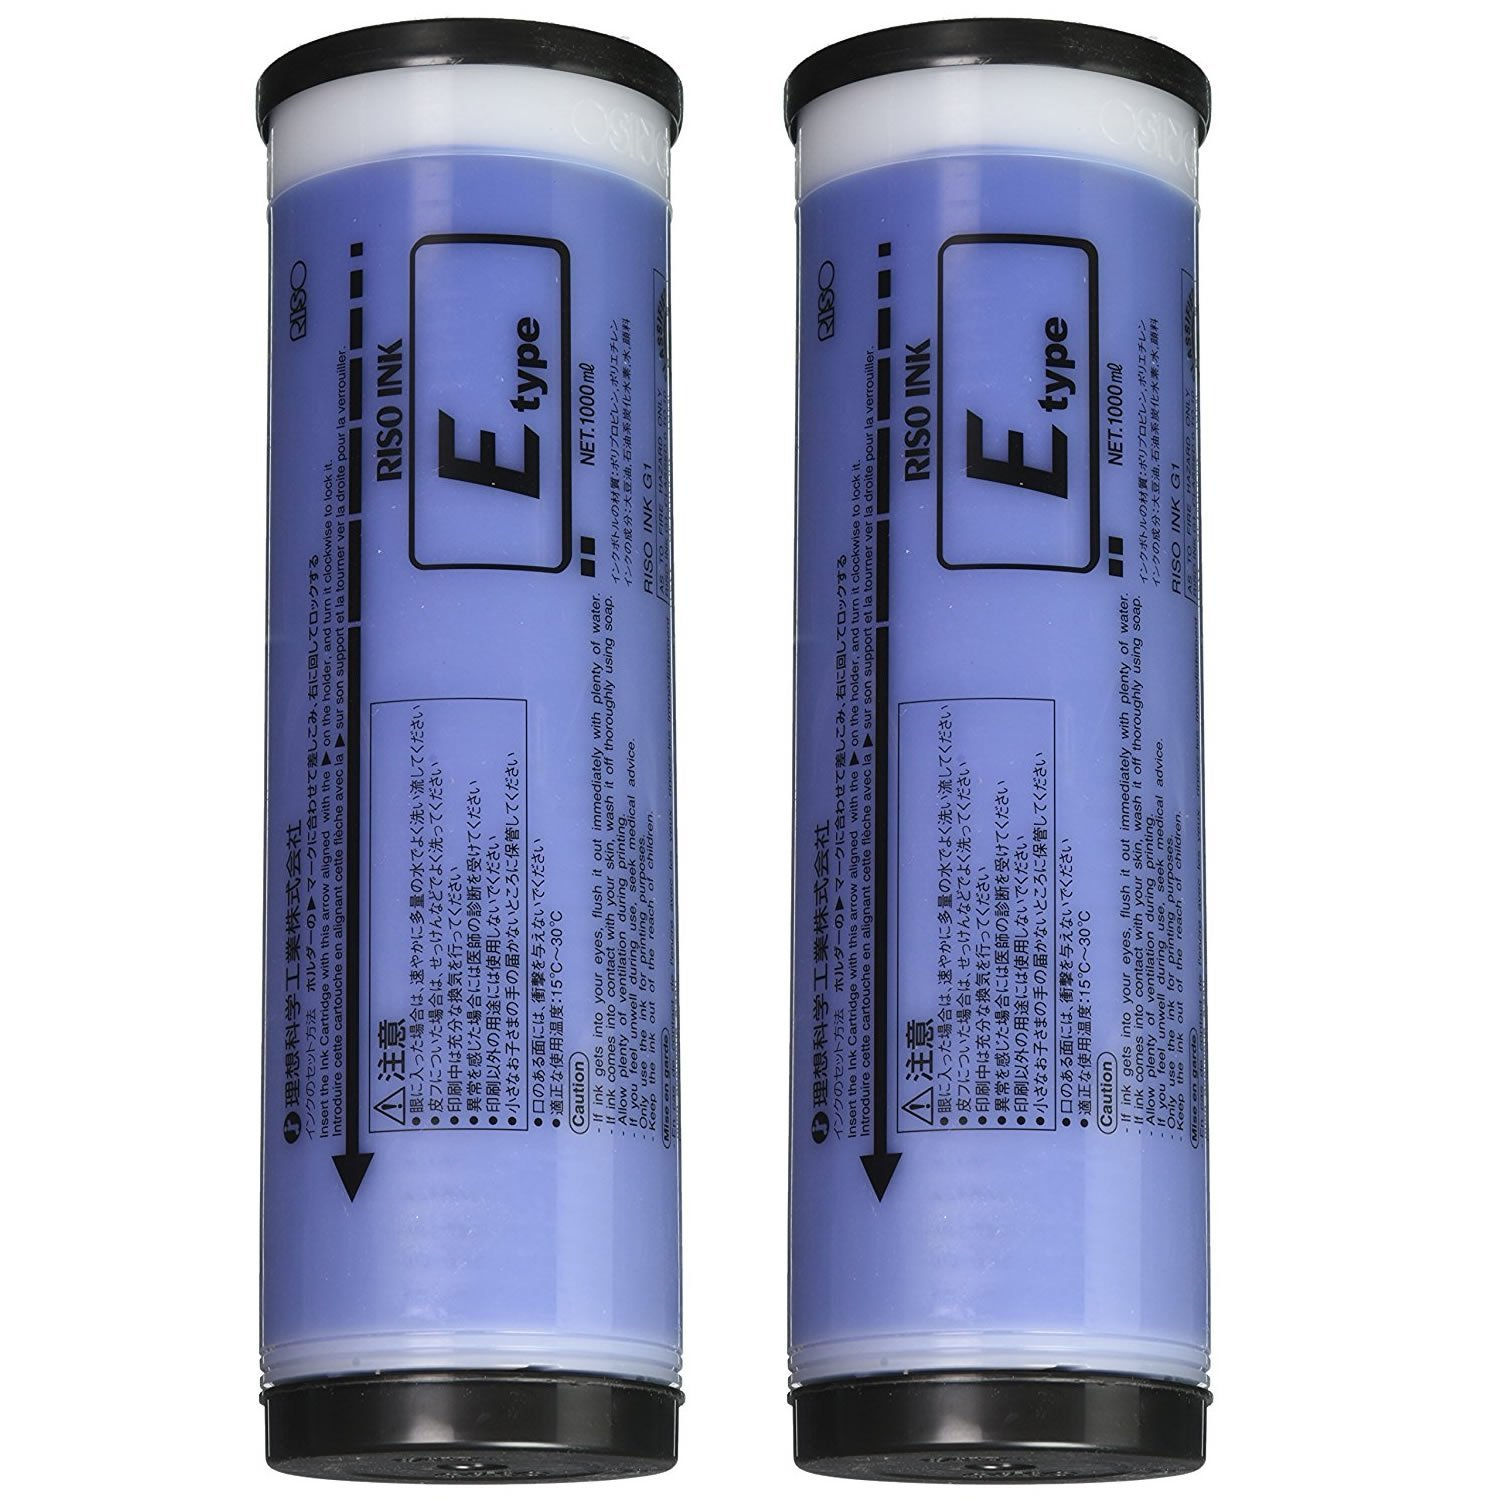 2 Riso S-7196 Blue Ink, for Risograph EZ, MZ, and RZ Series Duplicators by RISO (Image #1)